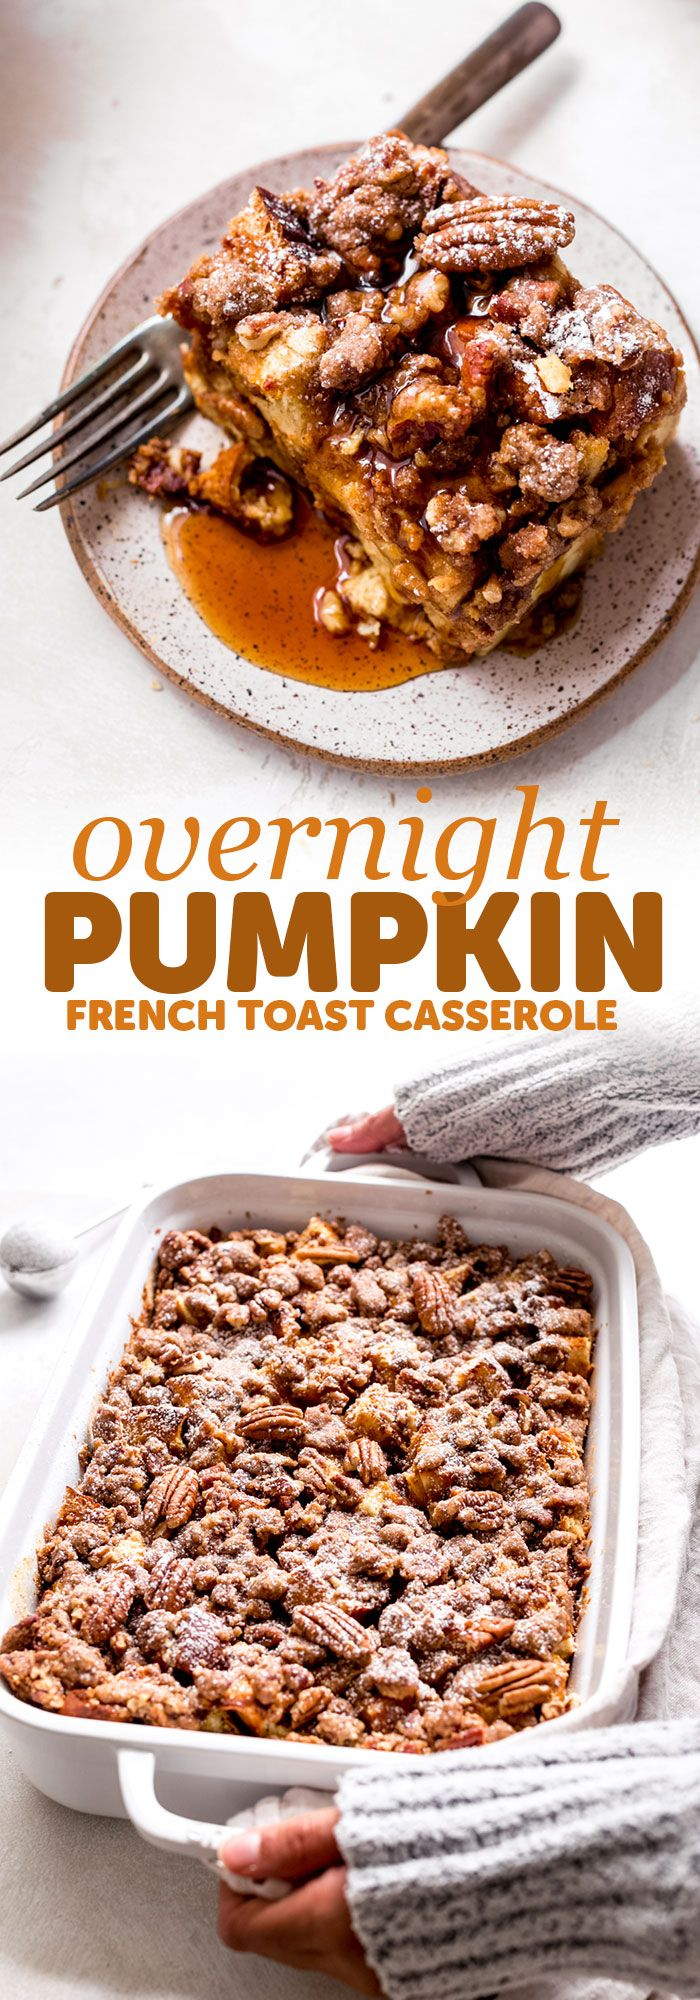 Pumpkin French Toast Casserole - This recipe is super friendly to make ahead of time and perfect for entertaining brunch guests of for Saturday mornin...